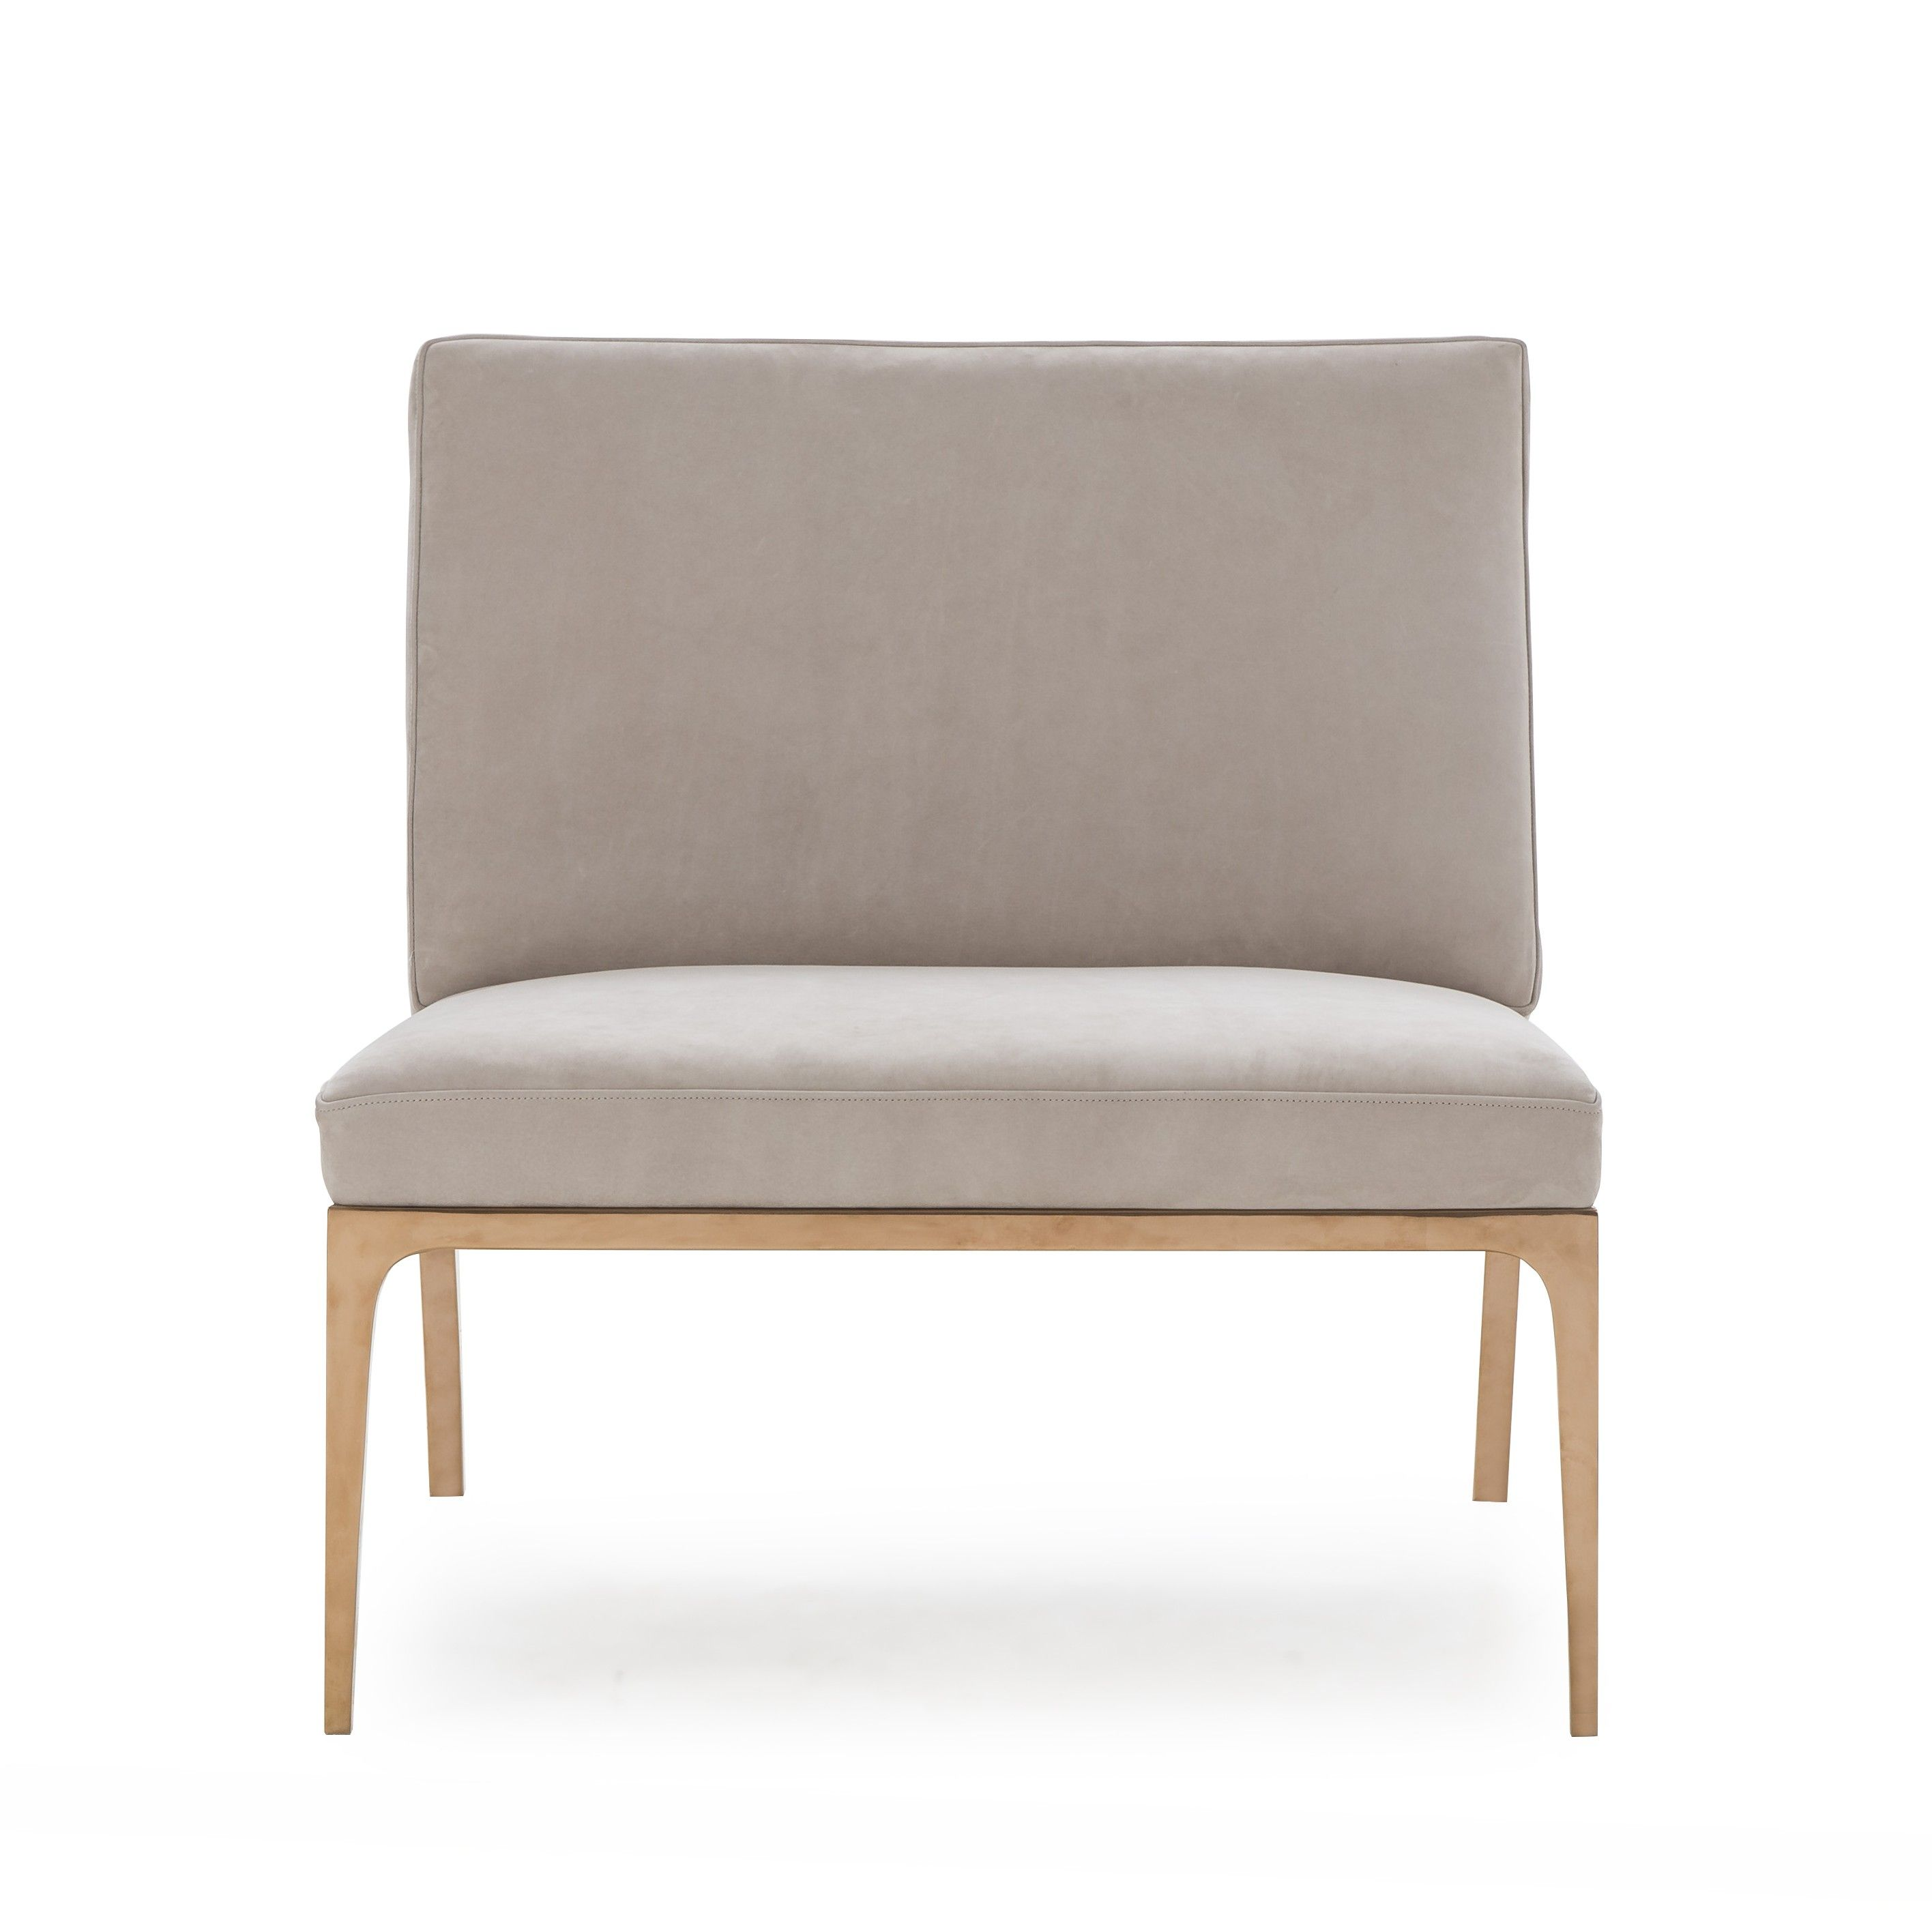 A Stunning Occasional Chair, With Poplar Wood And Stainless Steel Frame  Finished In Elegant Leather Upholstery. Dimensions: X X Cm Available To  View In Our ...